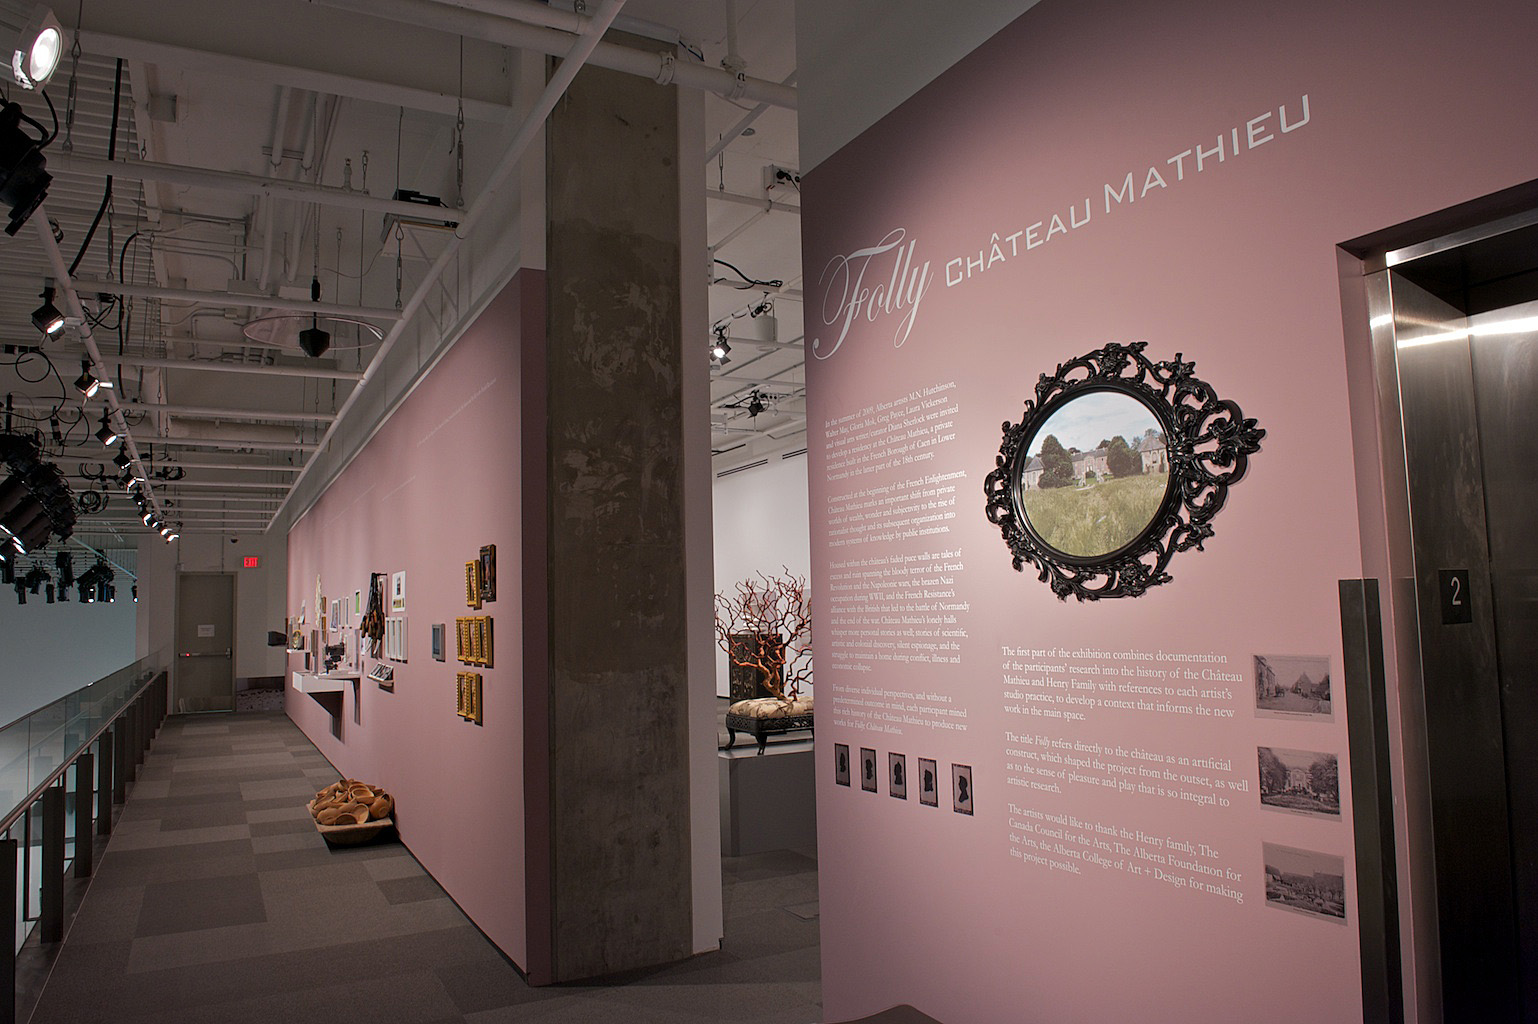 FOLLY: CHÂTEAU MATHIEU, January 24, 2014 – April 5, 2014, Curated by Diana Sherlock, (installation view), Photo:  Dave Brown, LCR Photo Services.